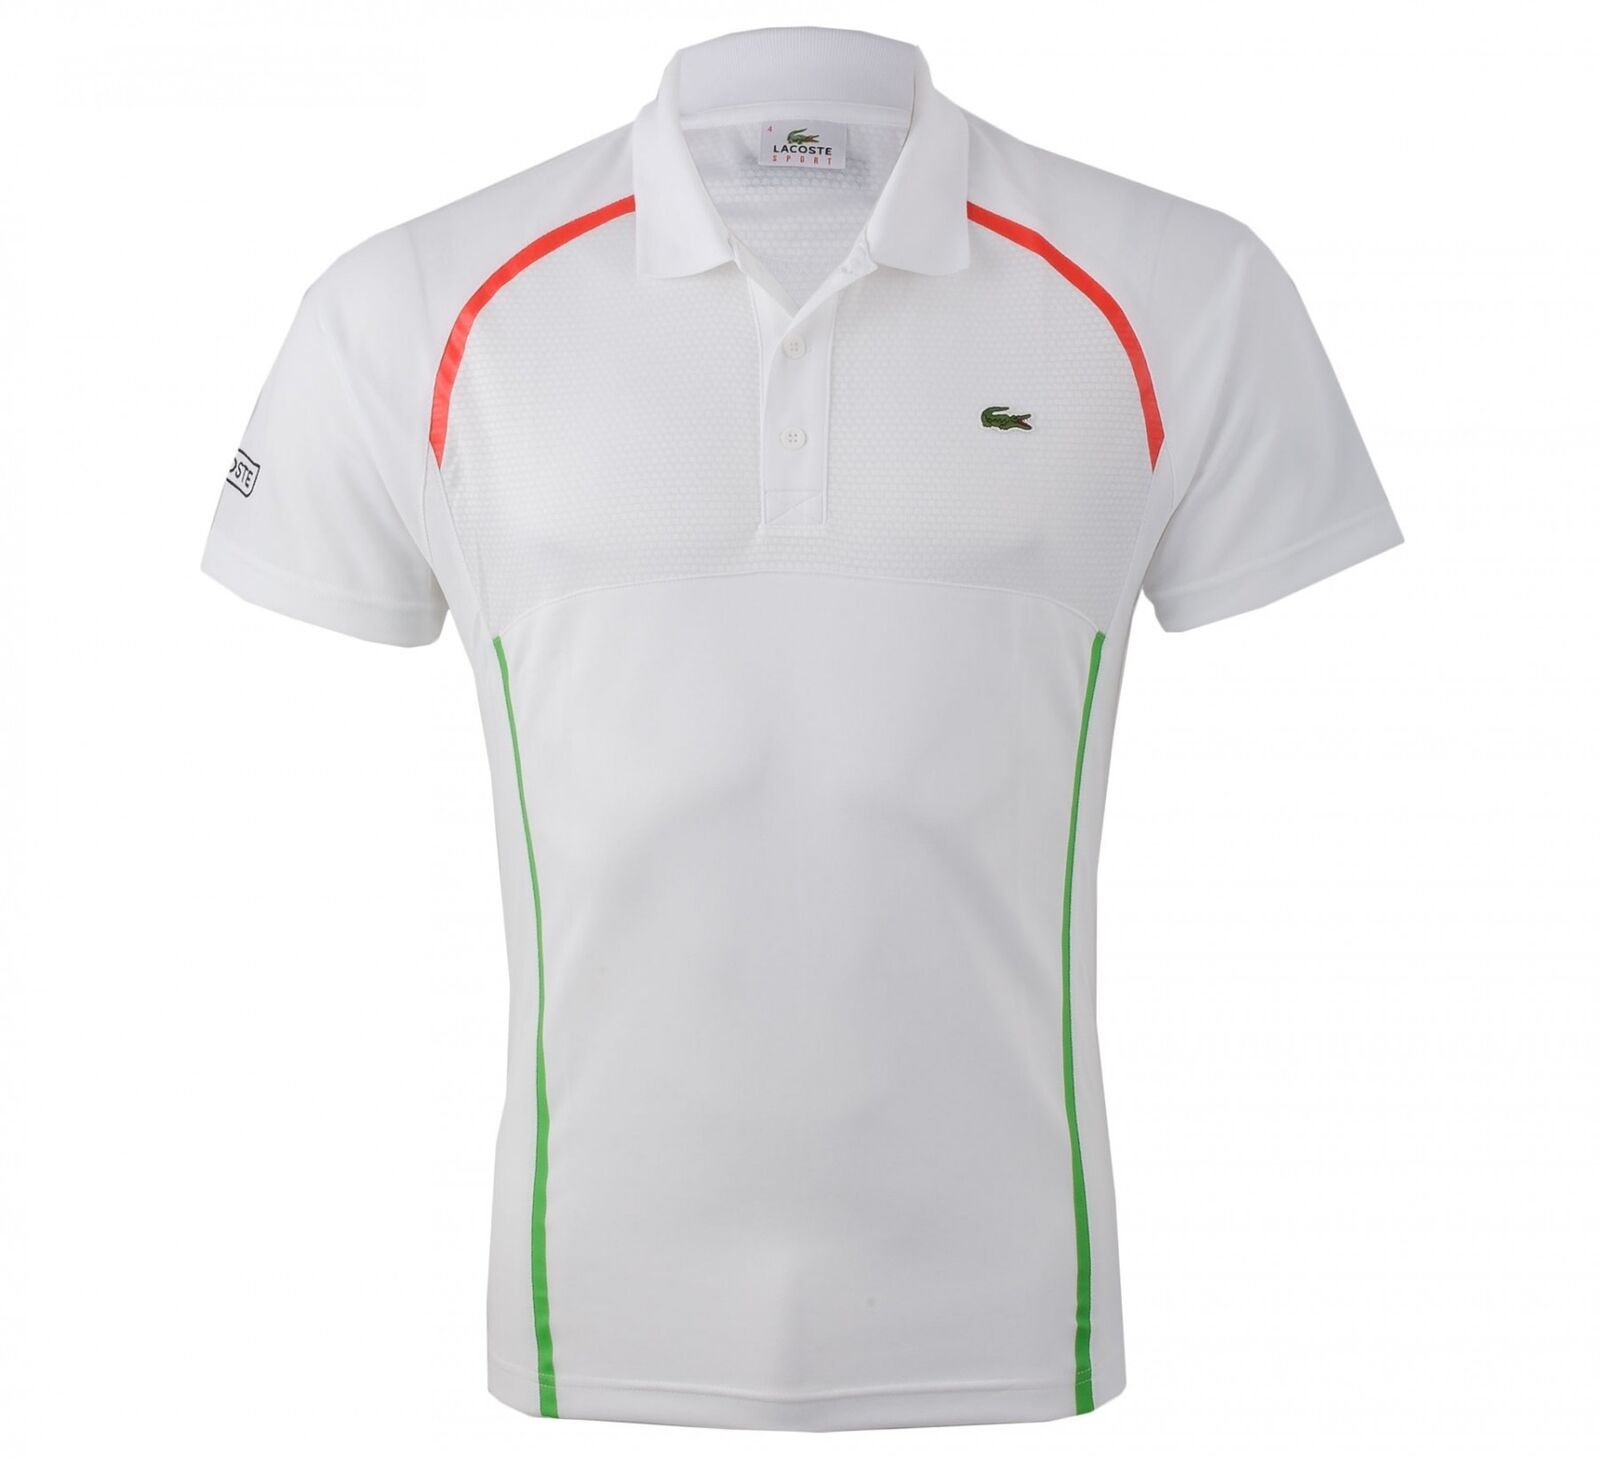 NWT Lacoste Sports Men's Ultra Dry Tennis Polo Shirt, Sizes 2-9, color vary